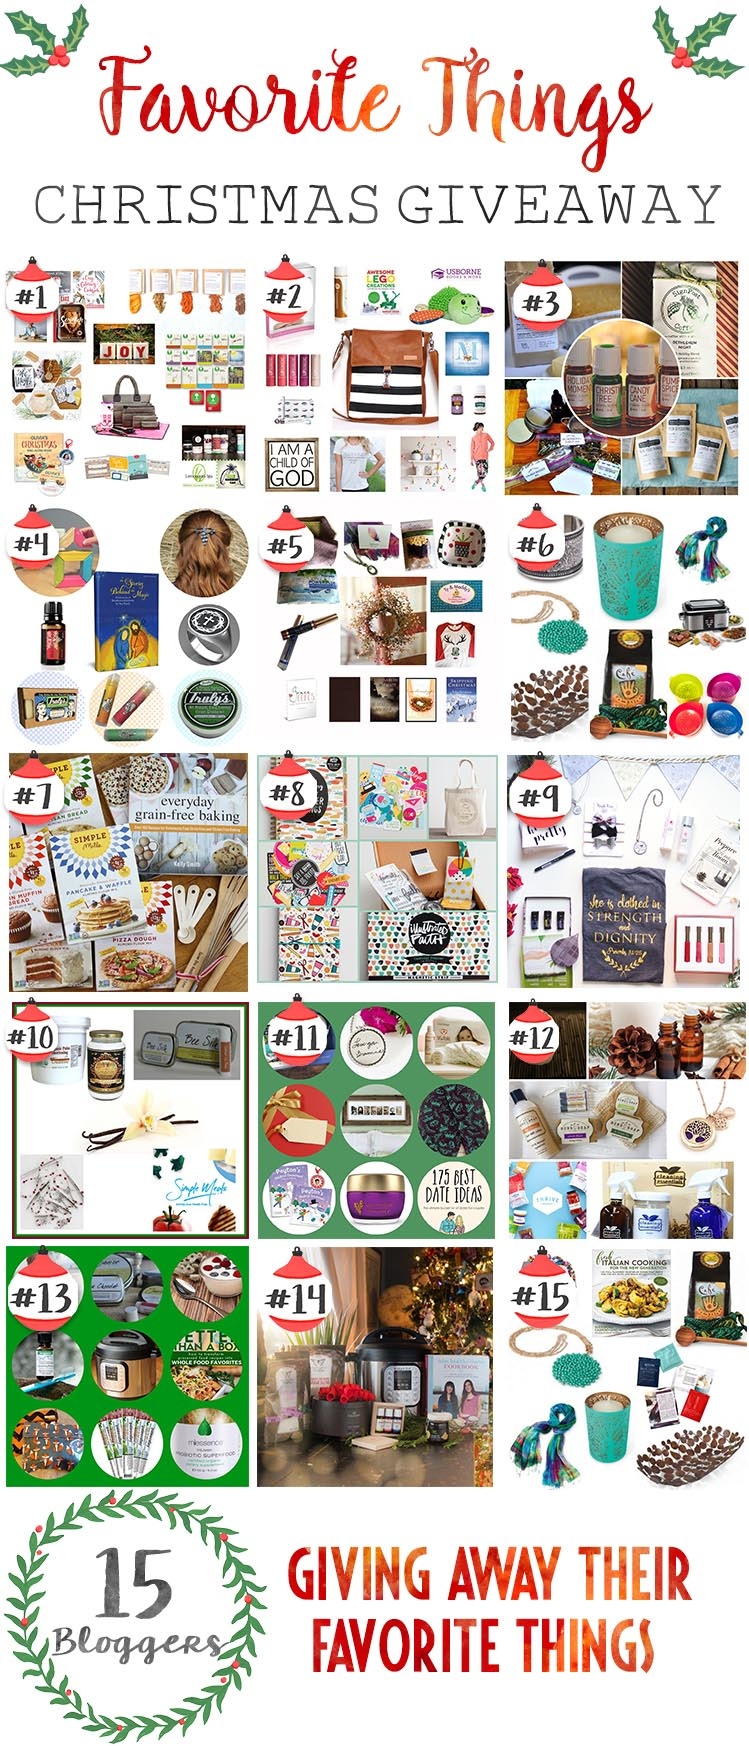 It's time for our annual Favorite Christmas Things giveaway! Enter to win 12 different giveaways and discover new favorite Christmas things for YOUR home and family...